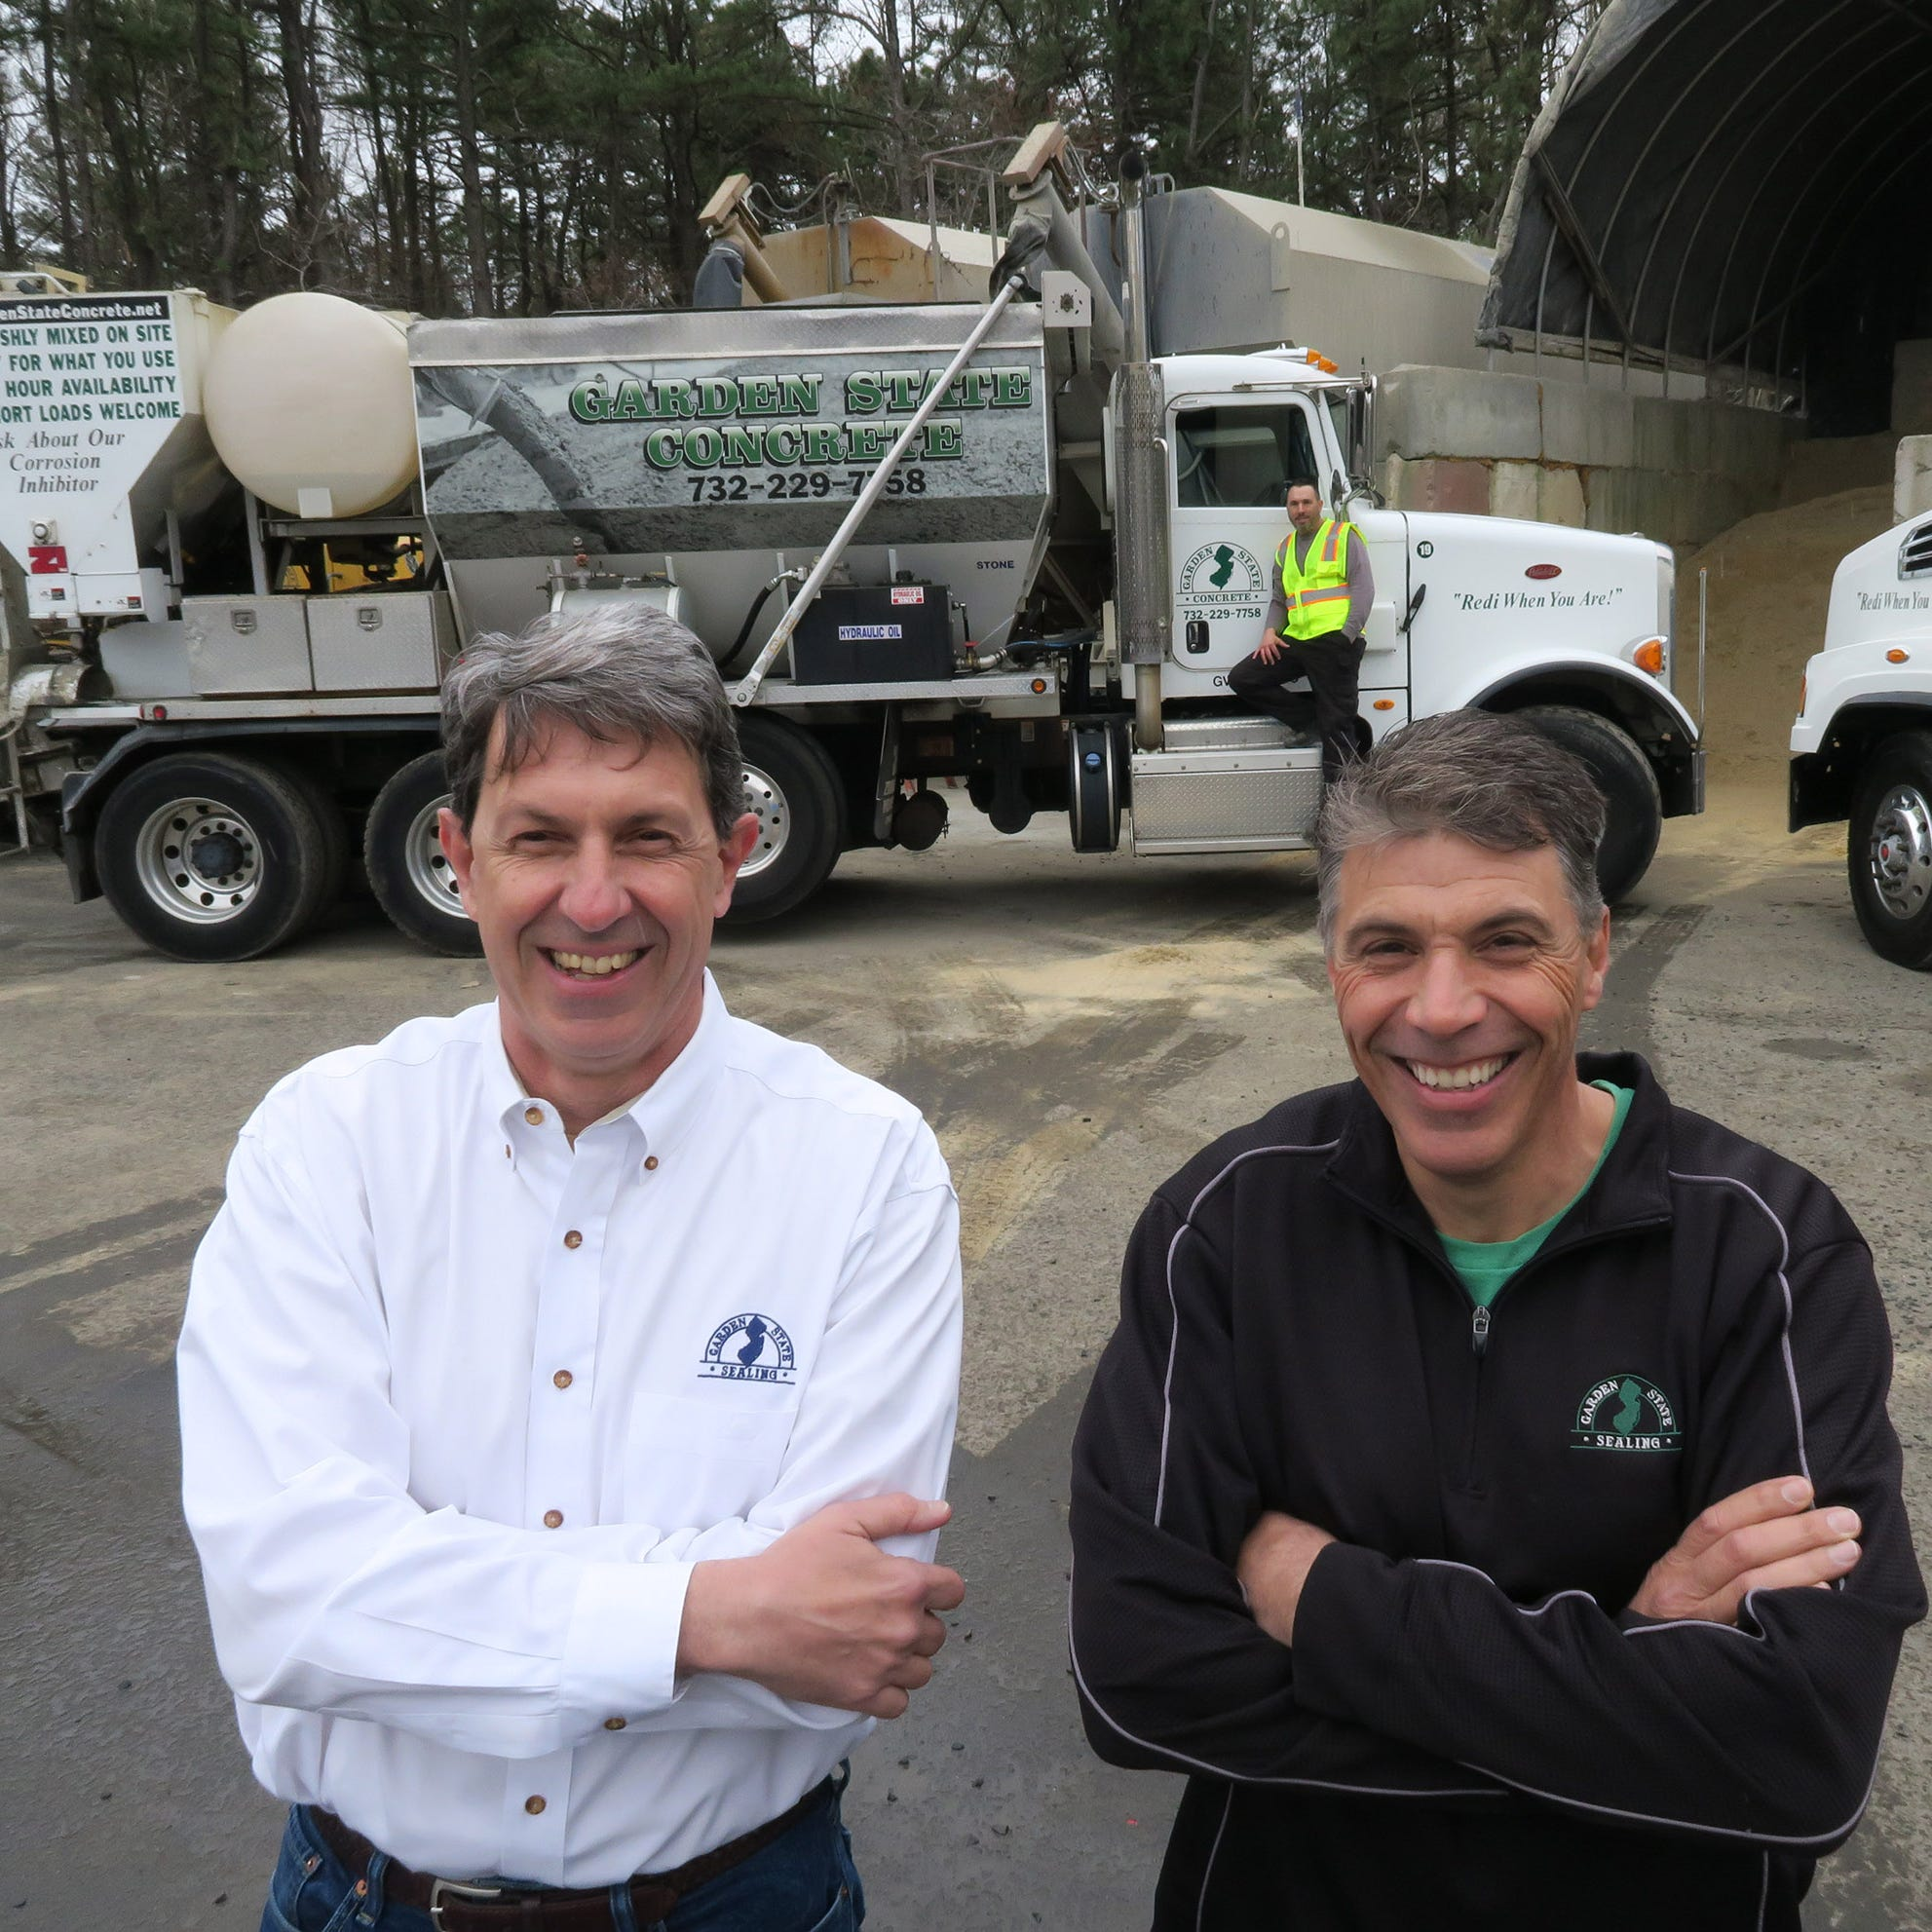 Garden State Concrete in Tinton Falls helped owners get out of the office